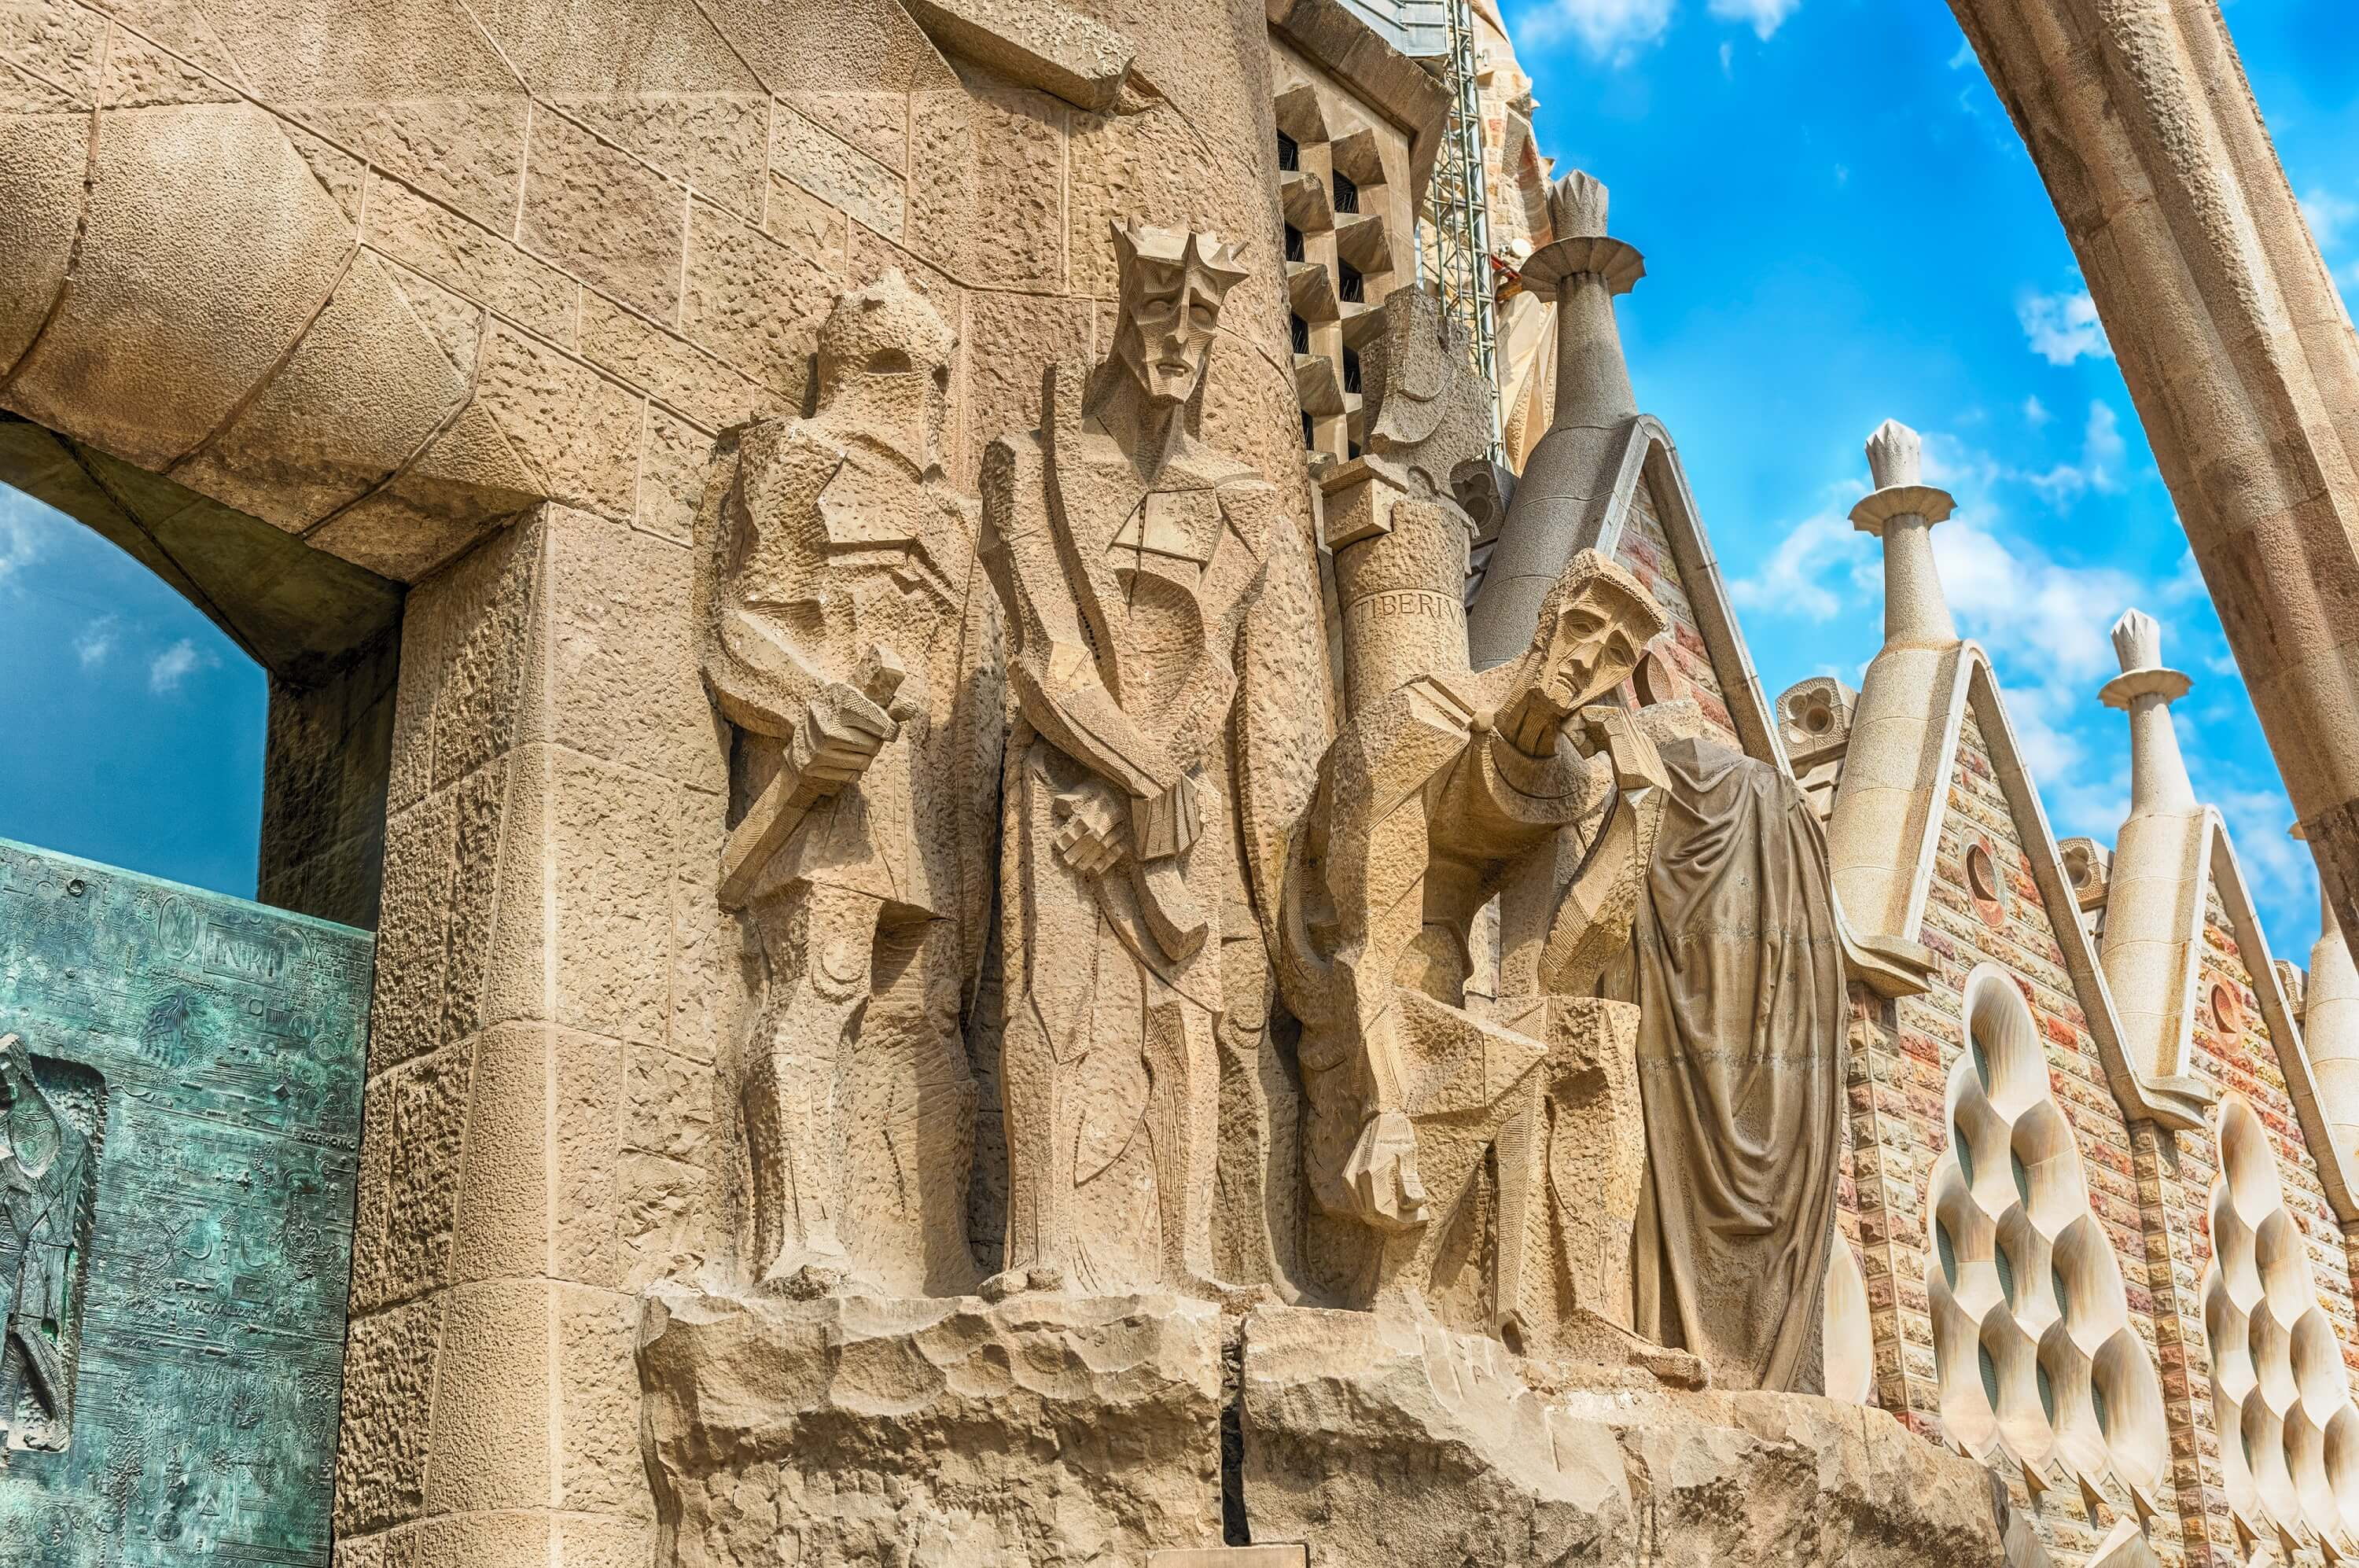 Don't make these 5 mistakes when visiting La Sagrada Familia - exterior of the church